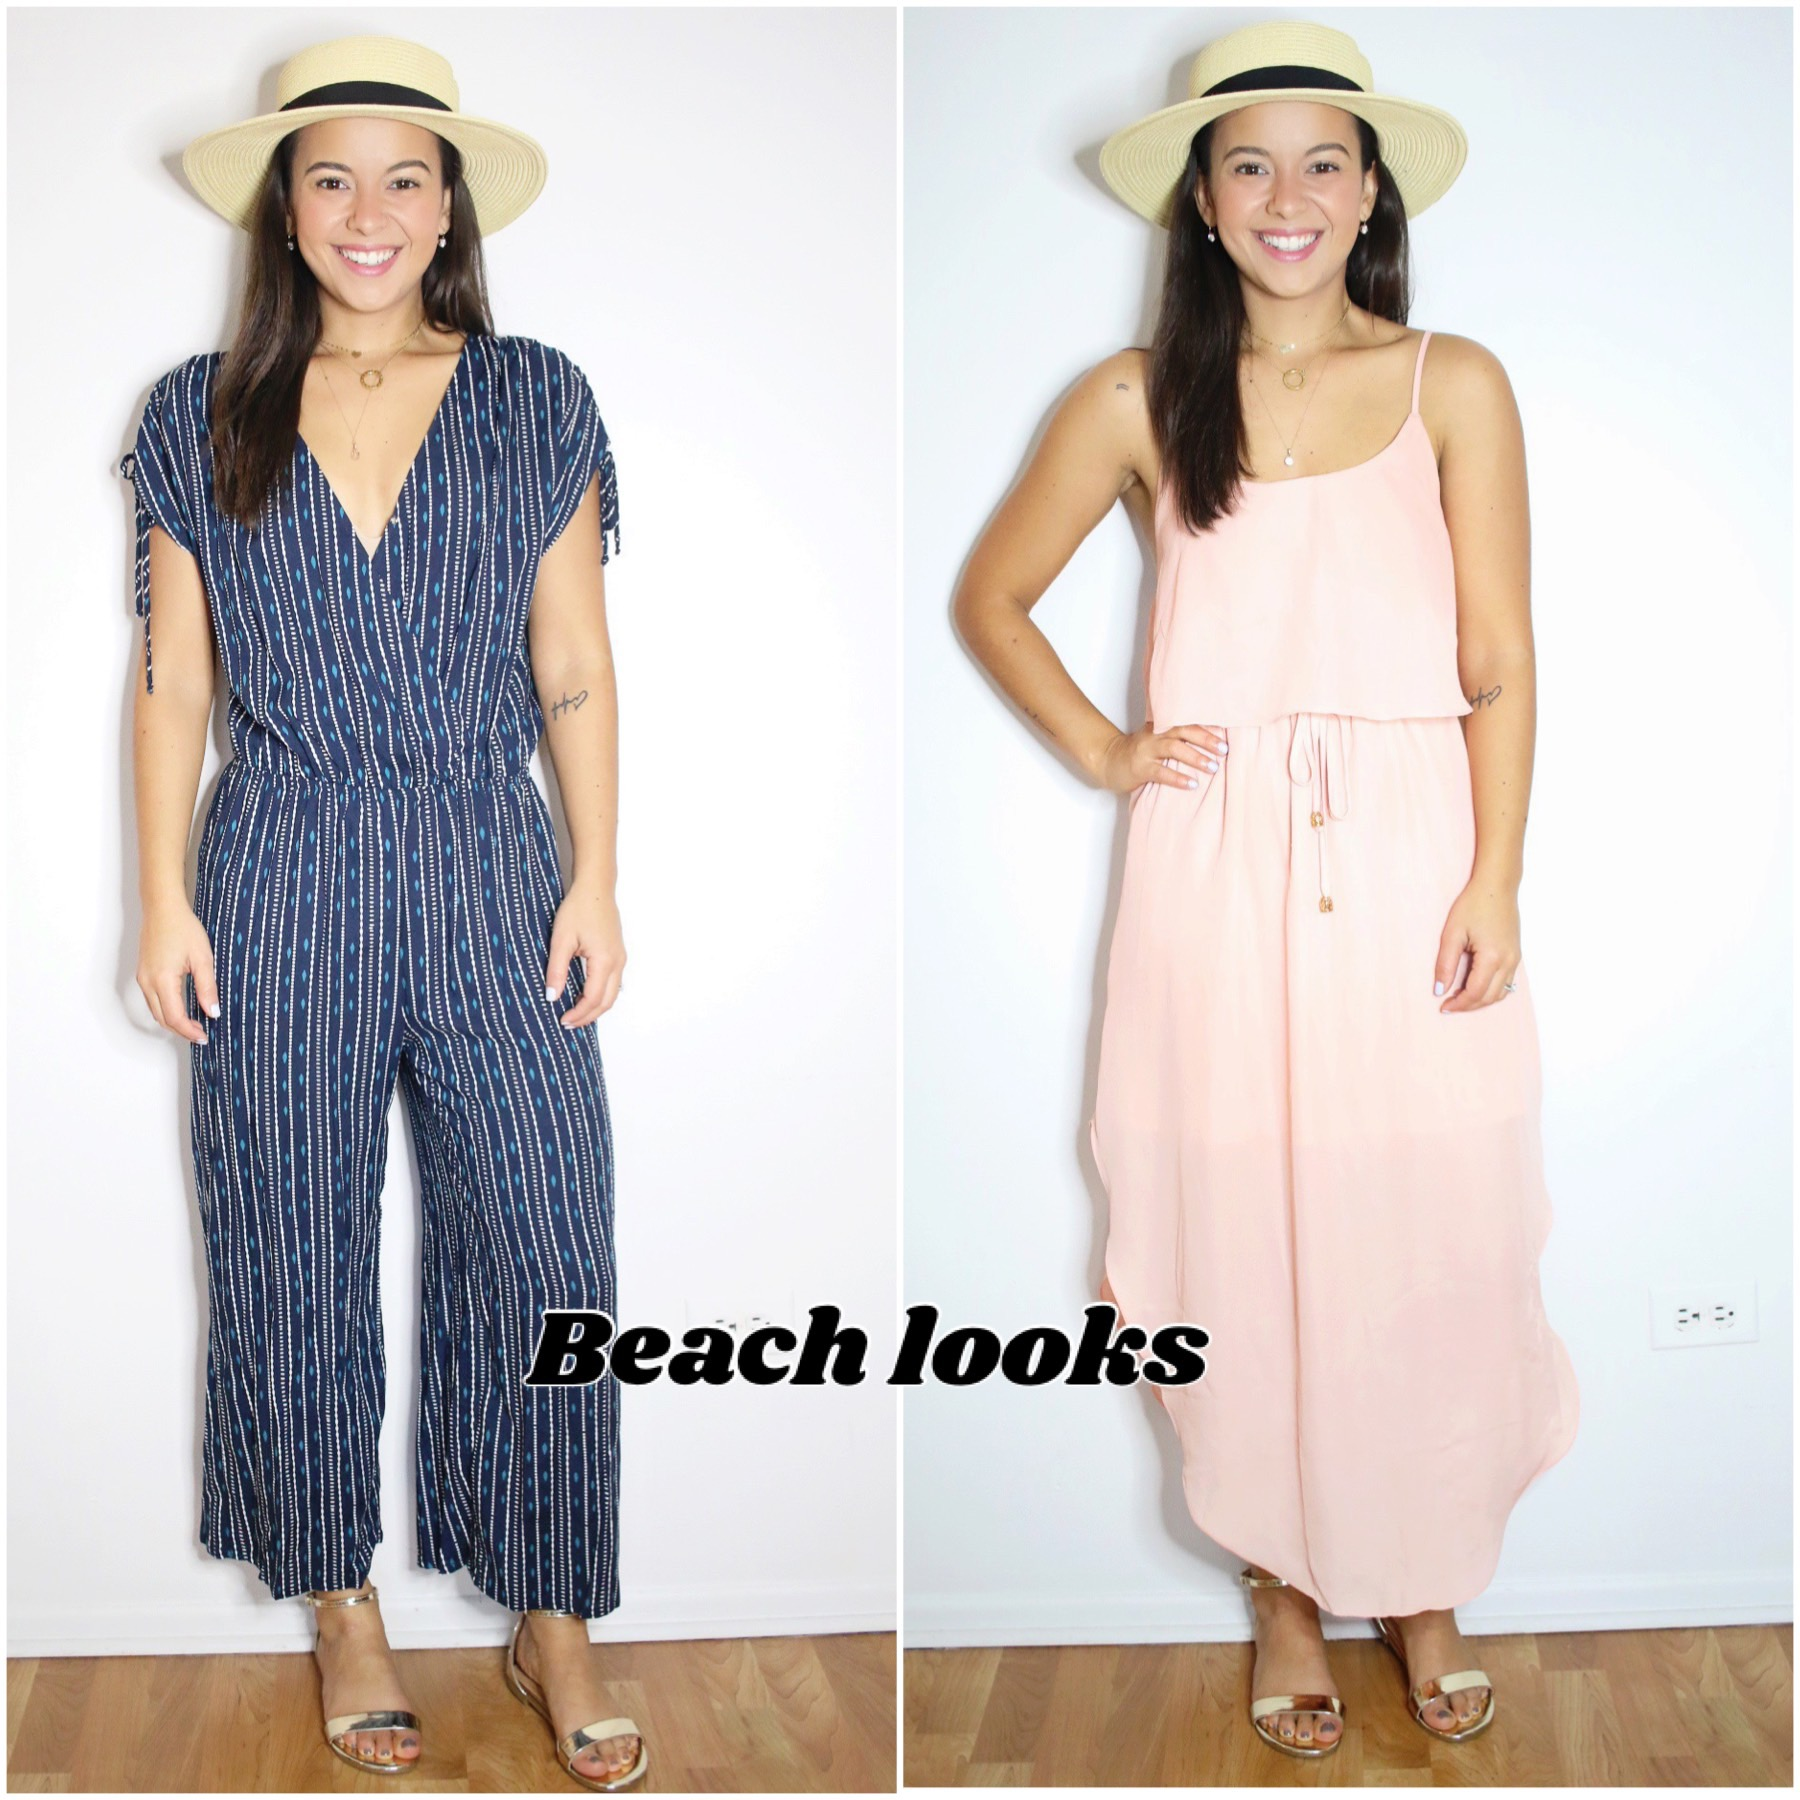 , Packing for my Florida trip – 10 looks. Part I